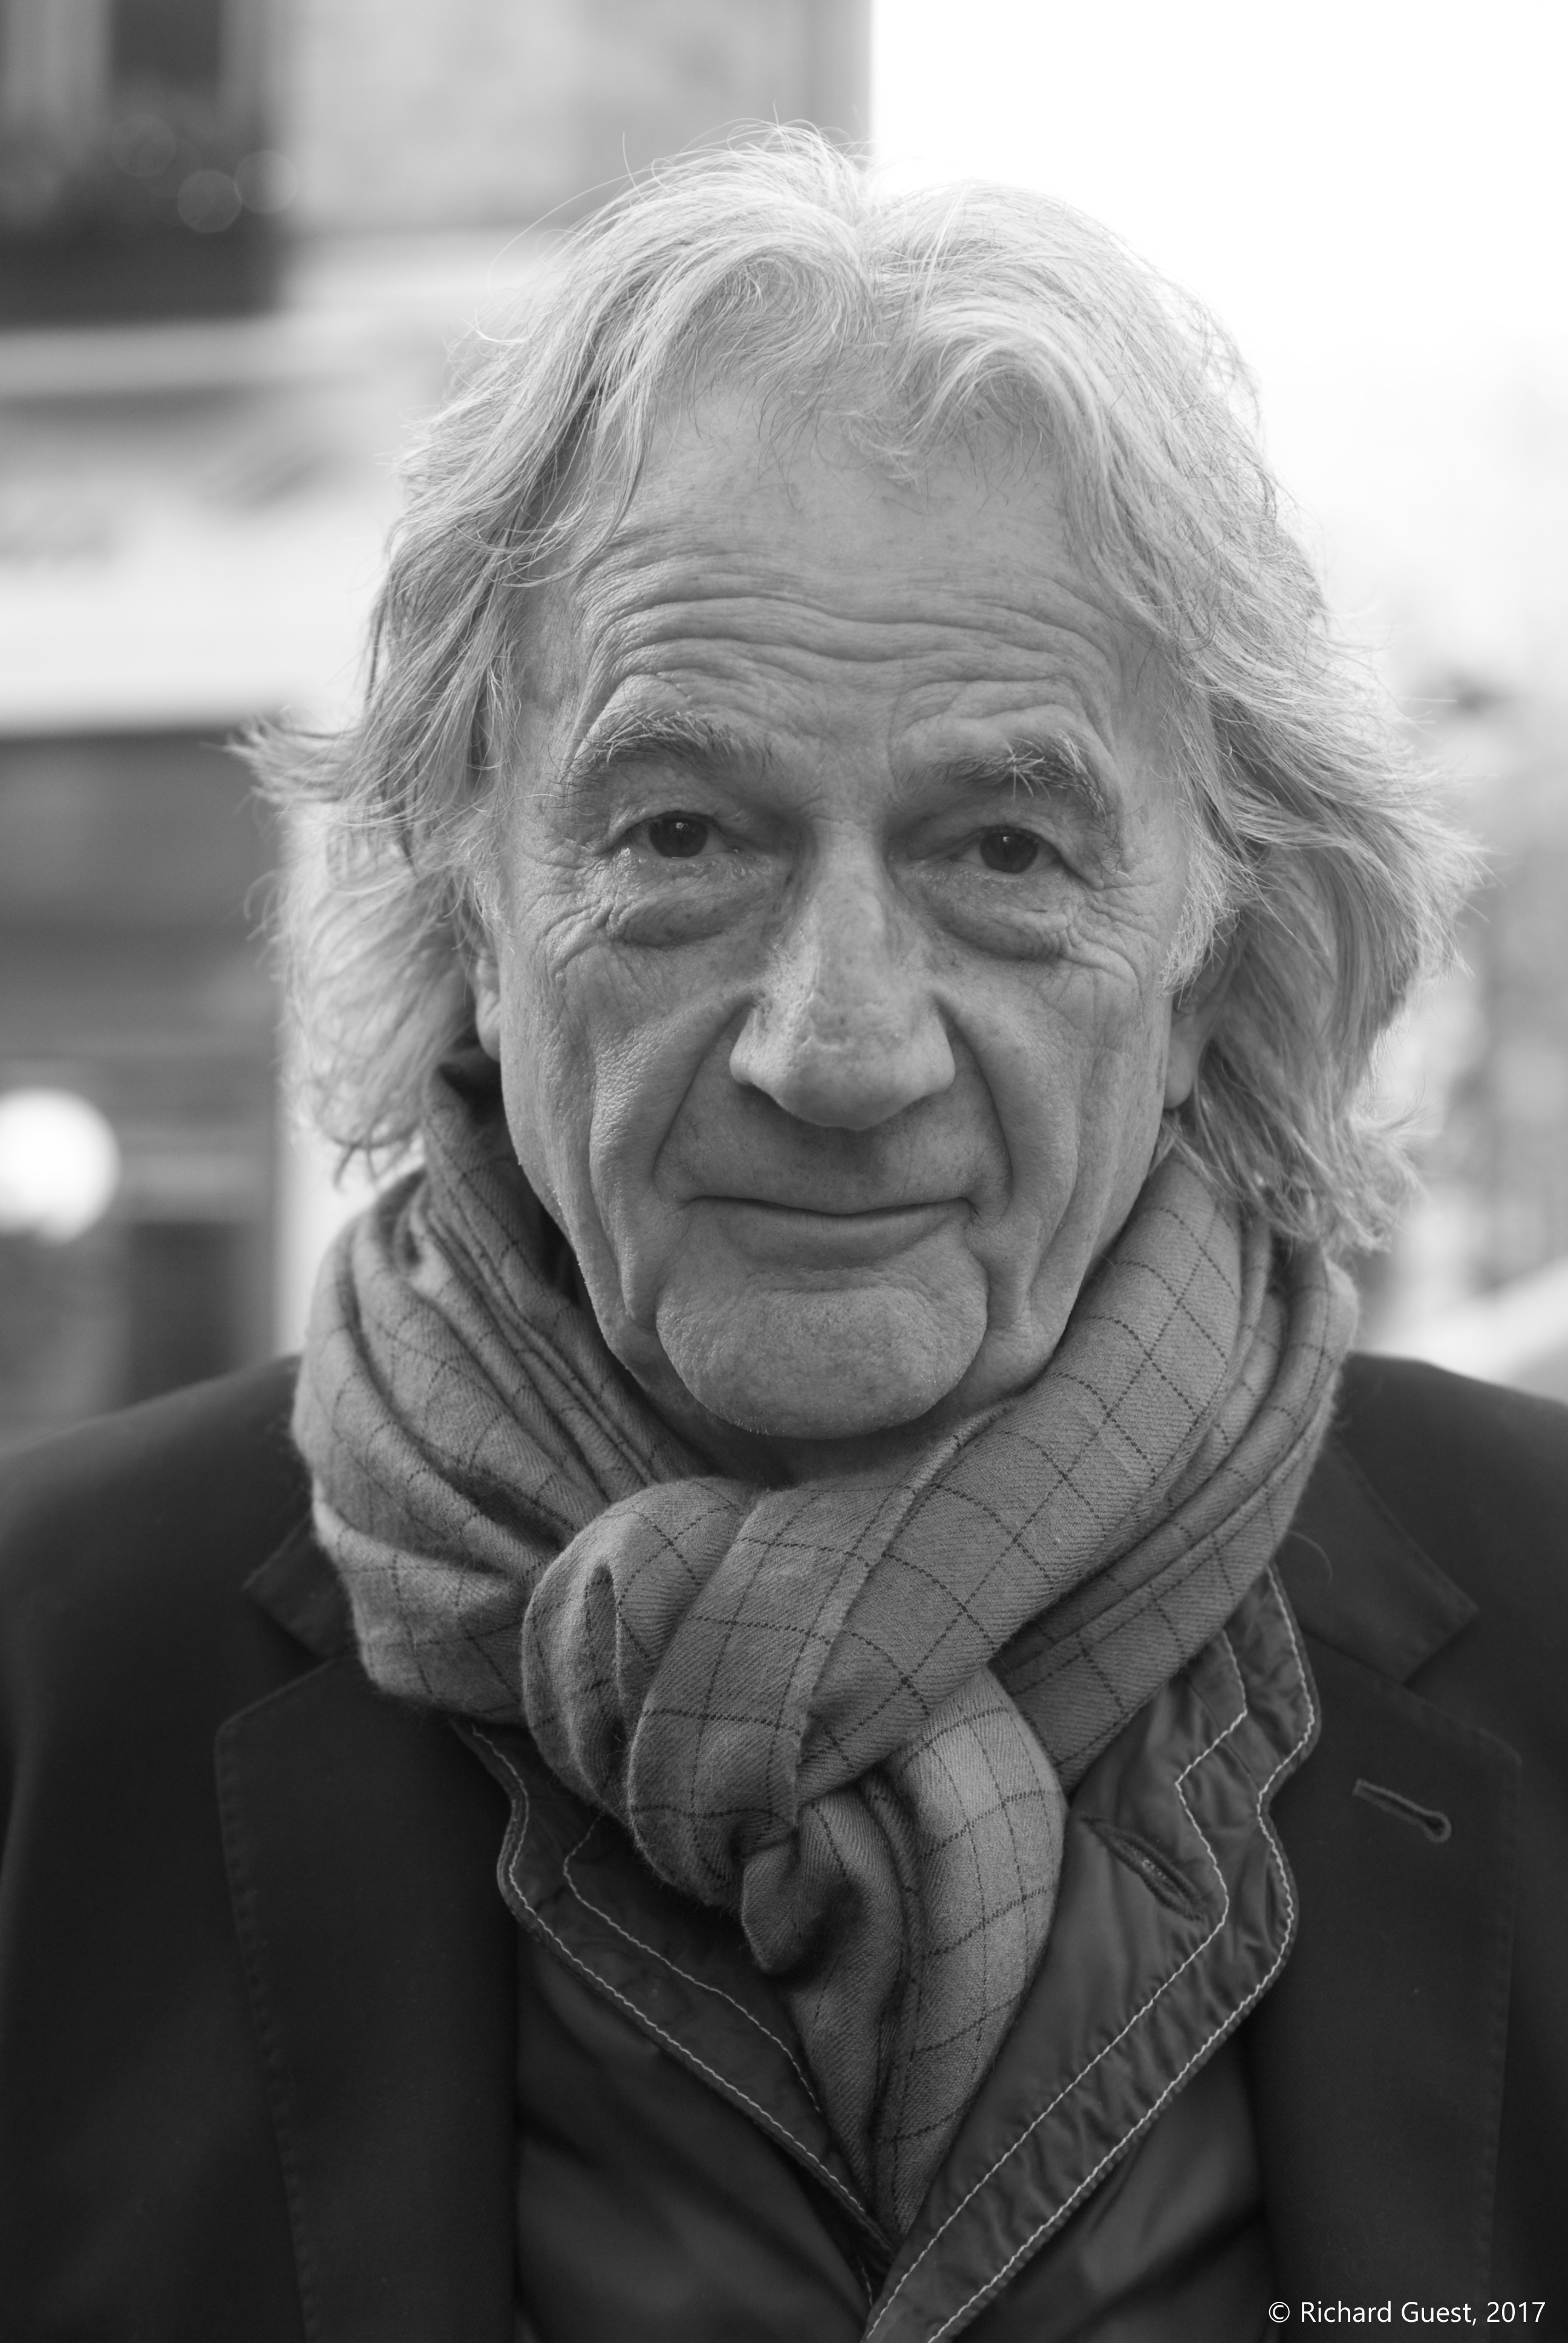 Street Portrait (for and of Paul Smith), 2017